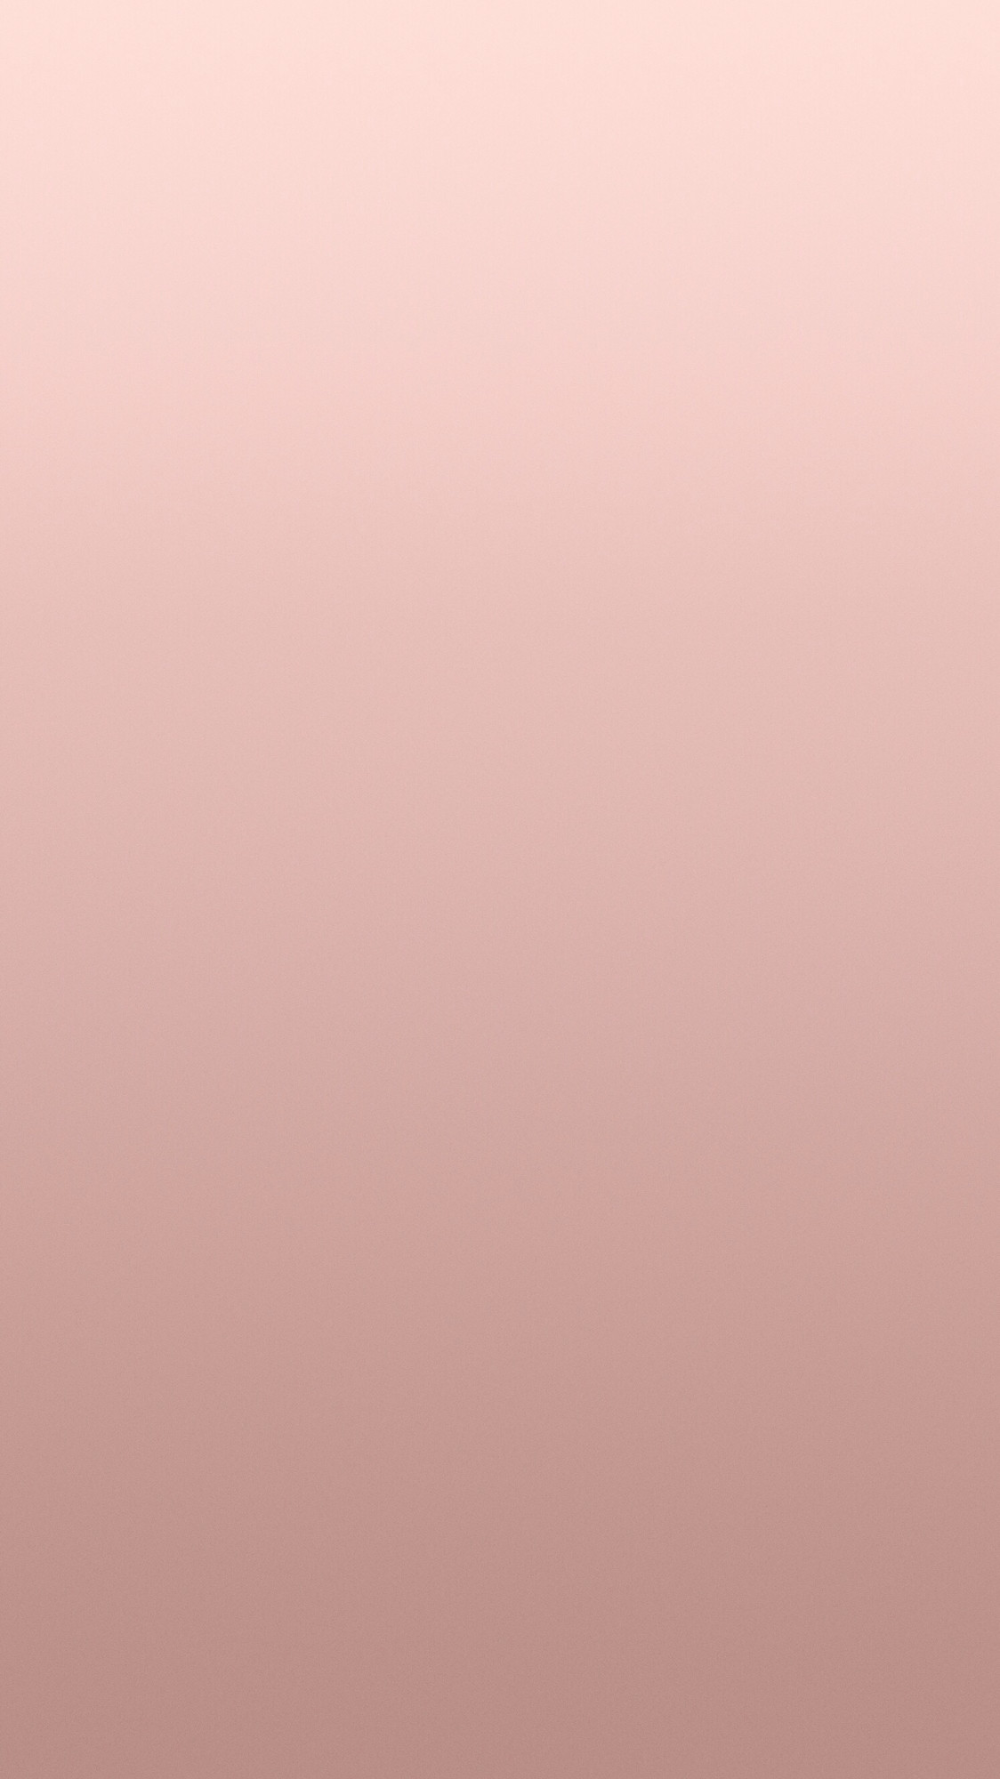 Rose Gold Wallpapers Ombre Wallpapers Ipad Wallpaper Ombre